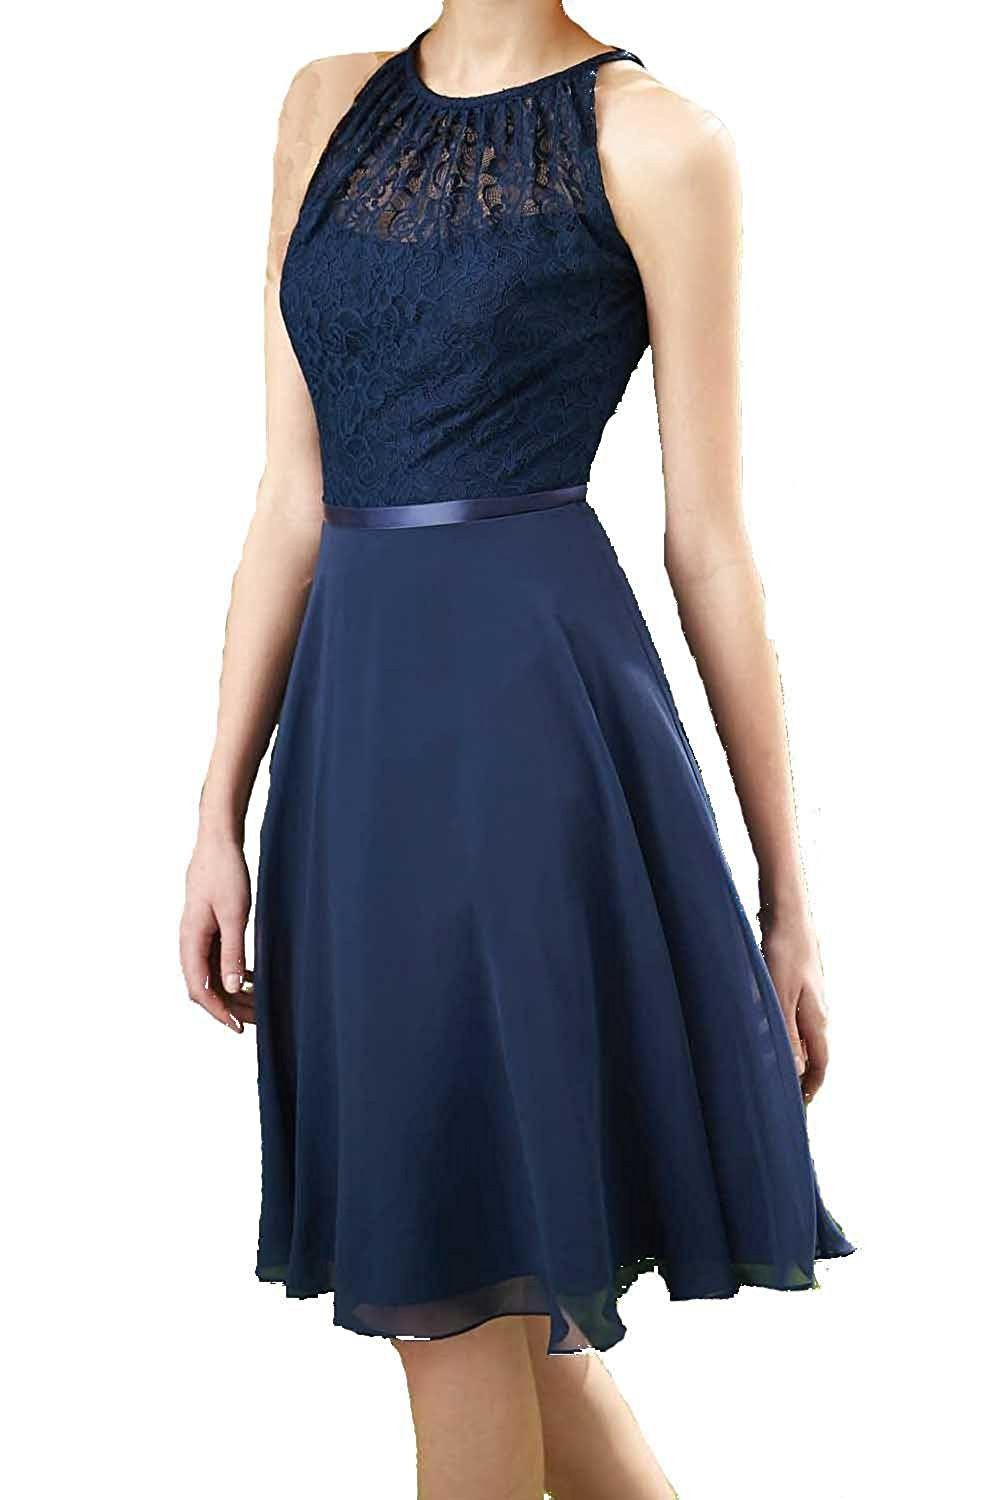 Womenus navy blue halter lace chiffon bridesmaid dress party gown